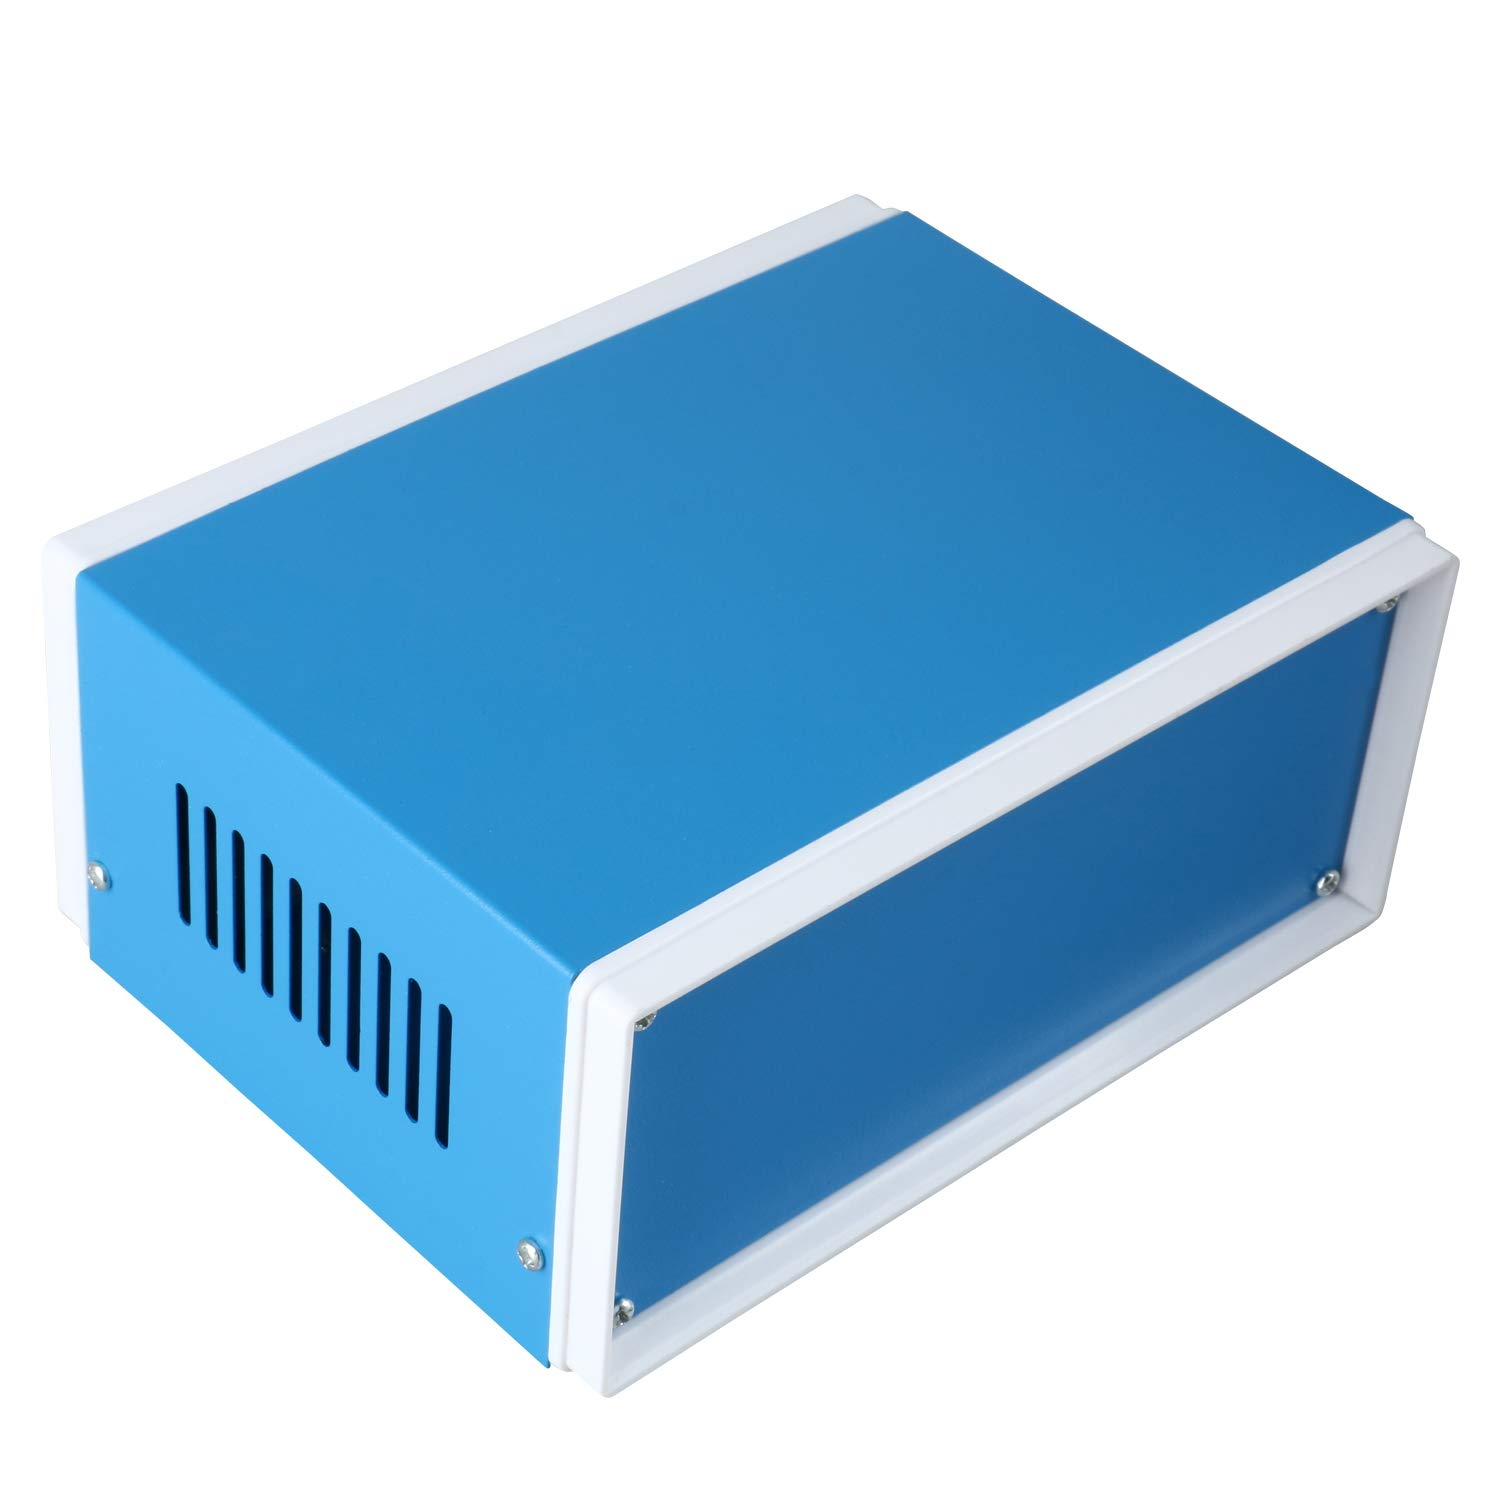 YaeCCC 170mmx130mmx80mm Rectangle Project Enclosure Case Electric Junction Box Blue